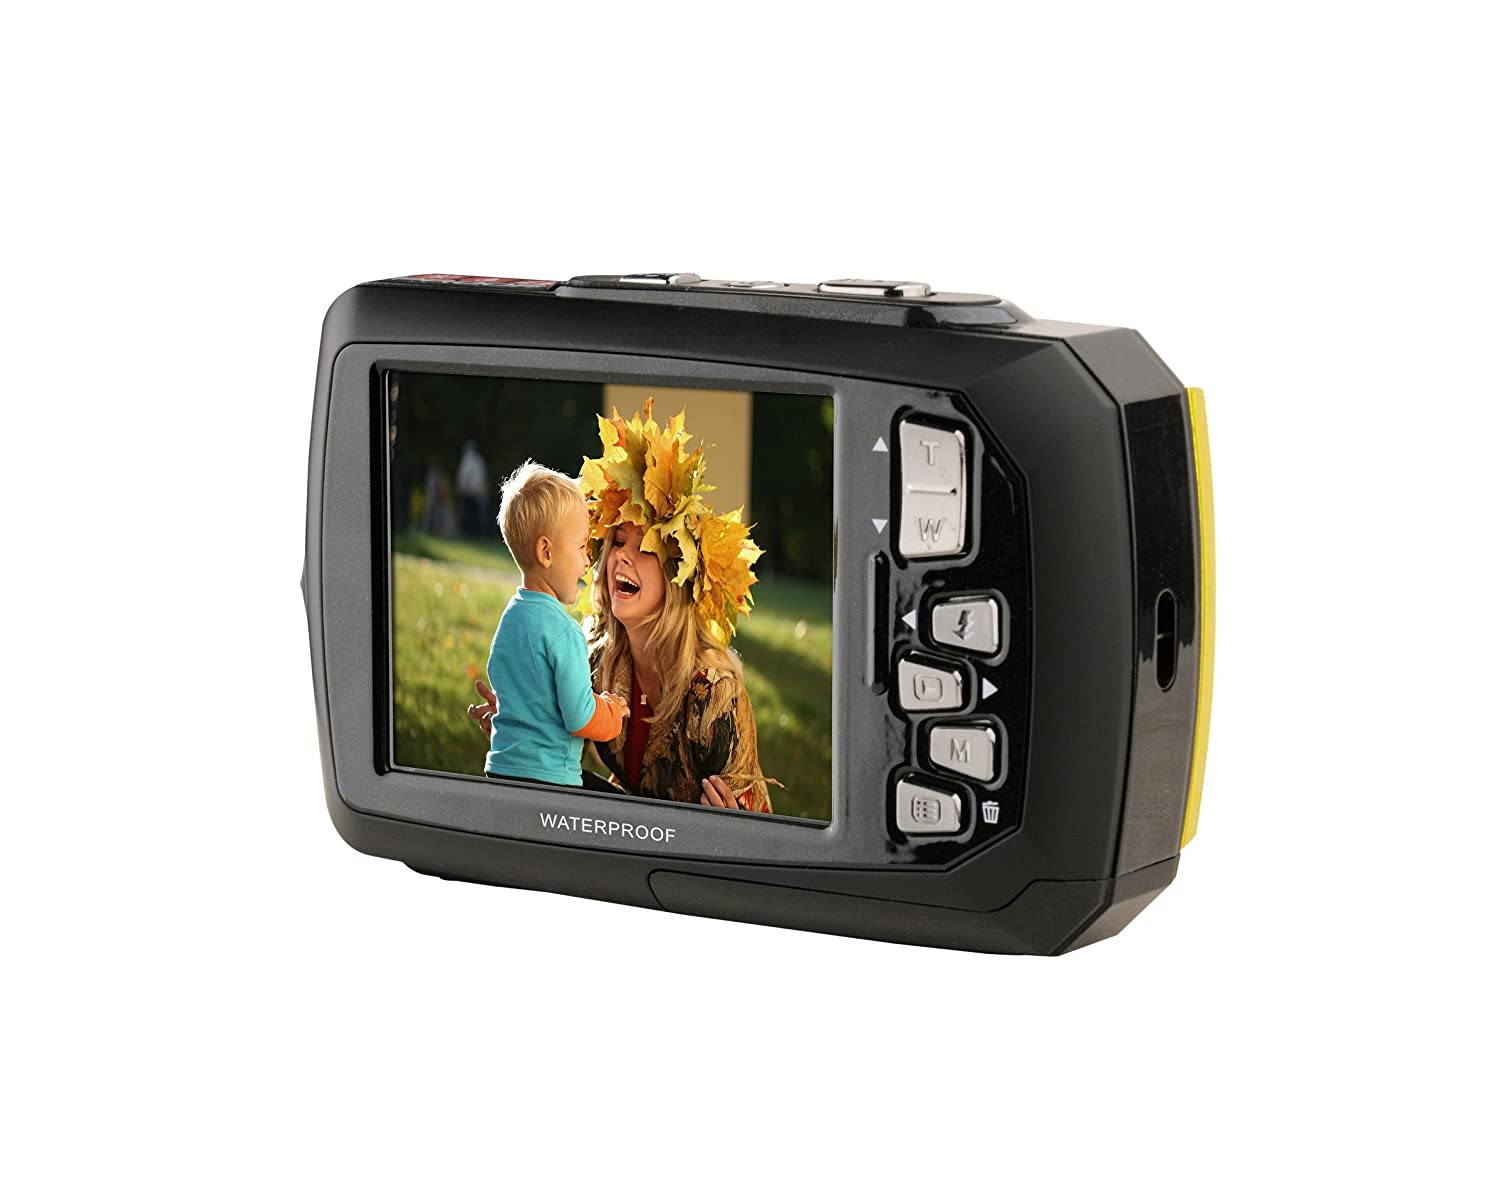 Amazon.com : Coleman Duo2 2V9WP-O 20 MP Waterproof Digital Camera with Dual LCD Screen (Orange)